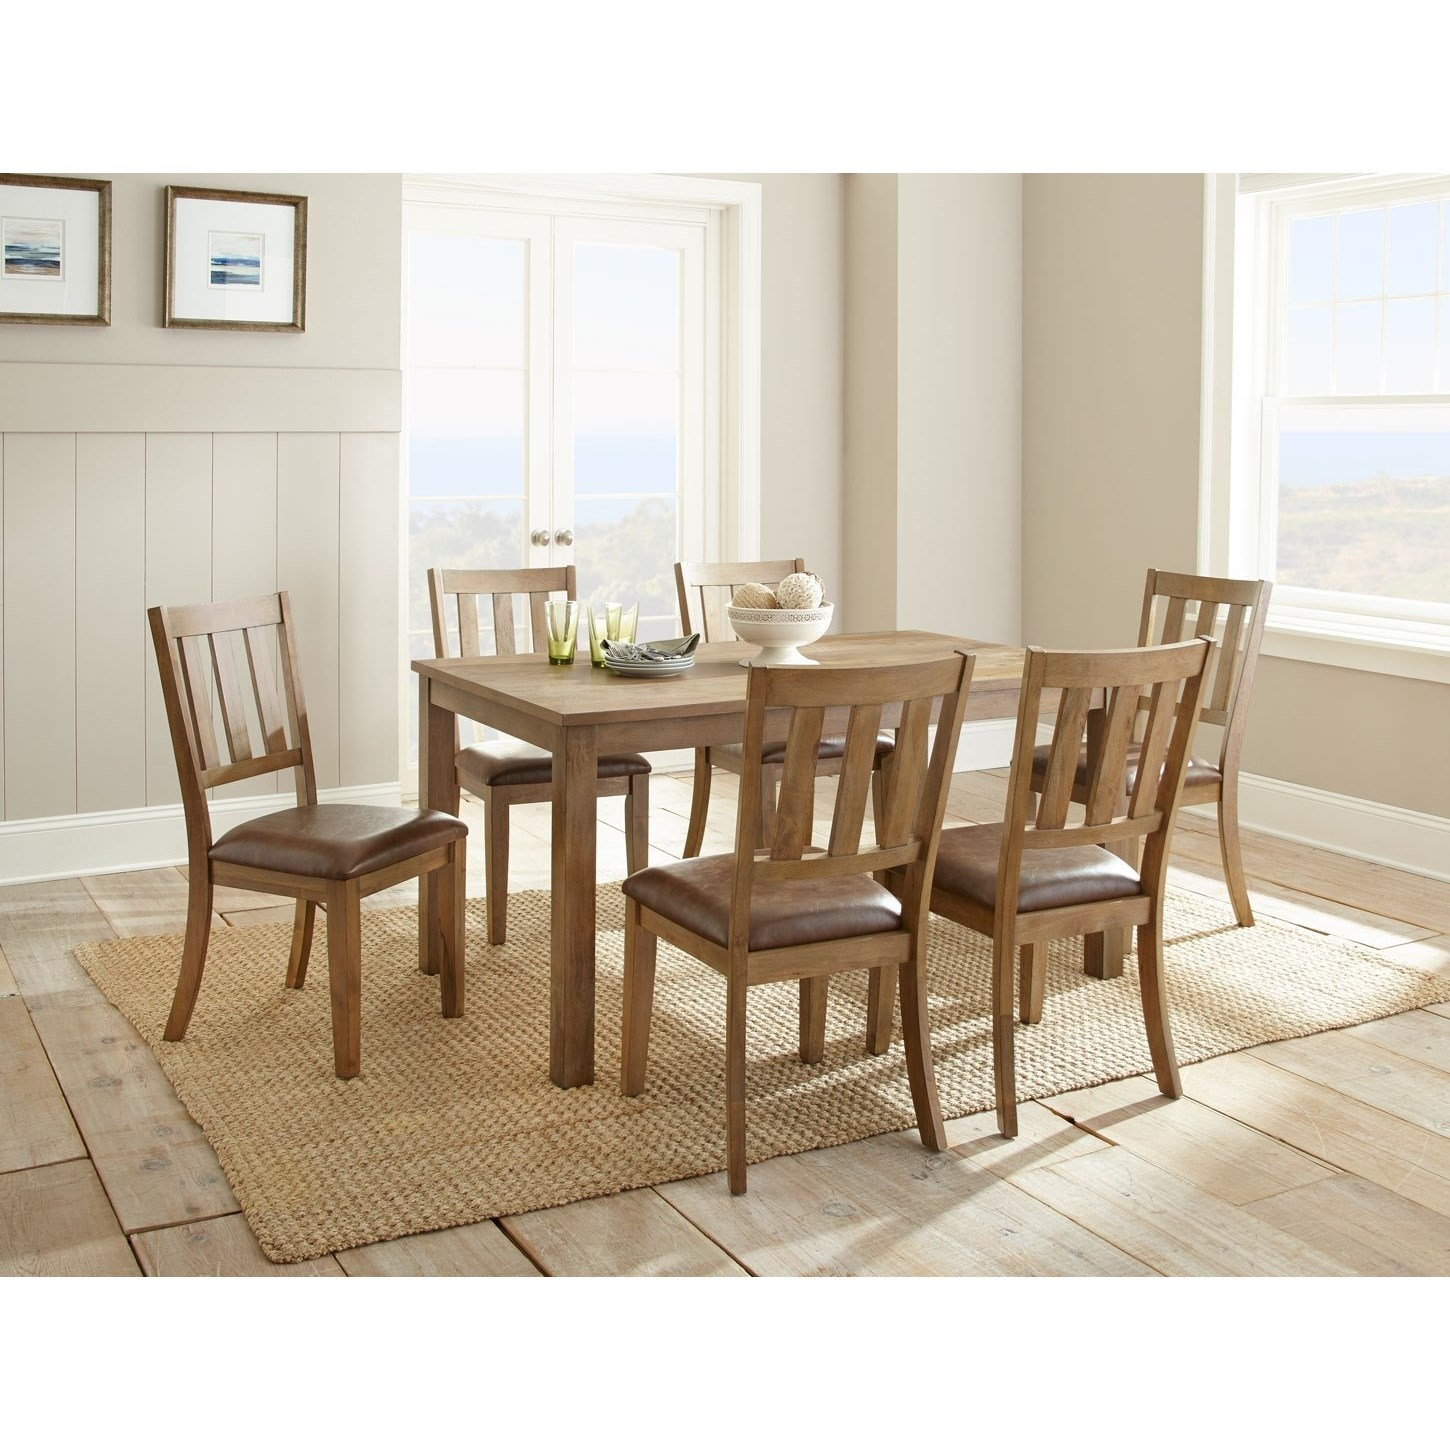 Ander Seven Piece Dining Set by Steve Silver at Standard Furniture